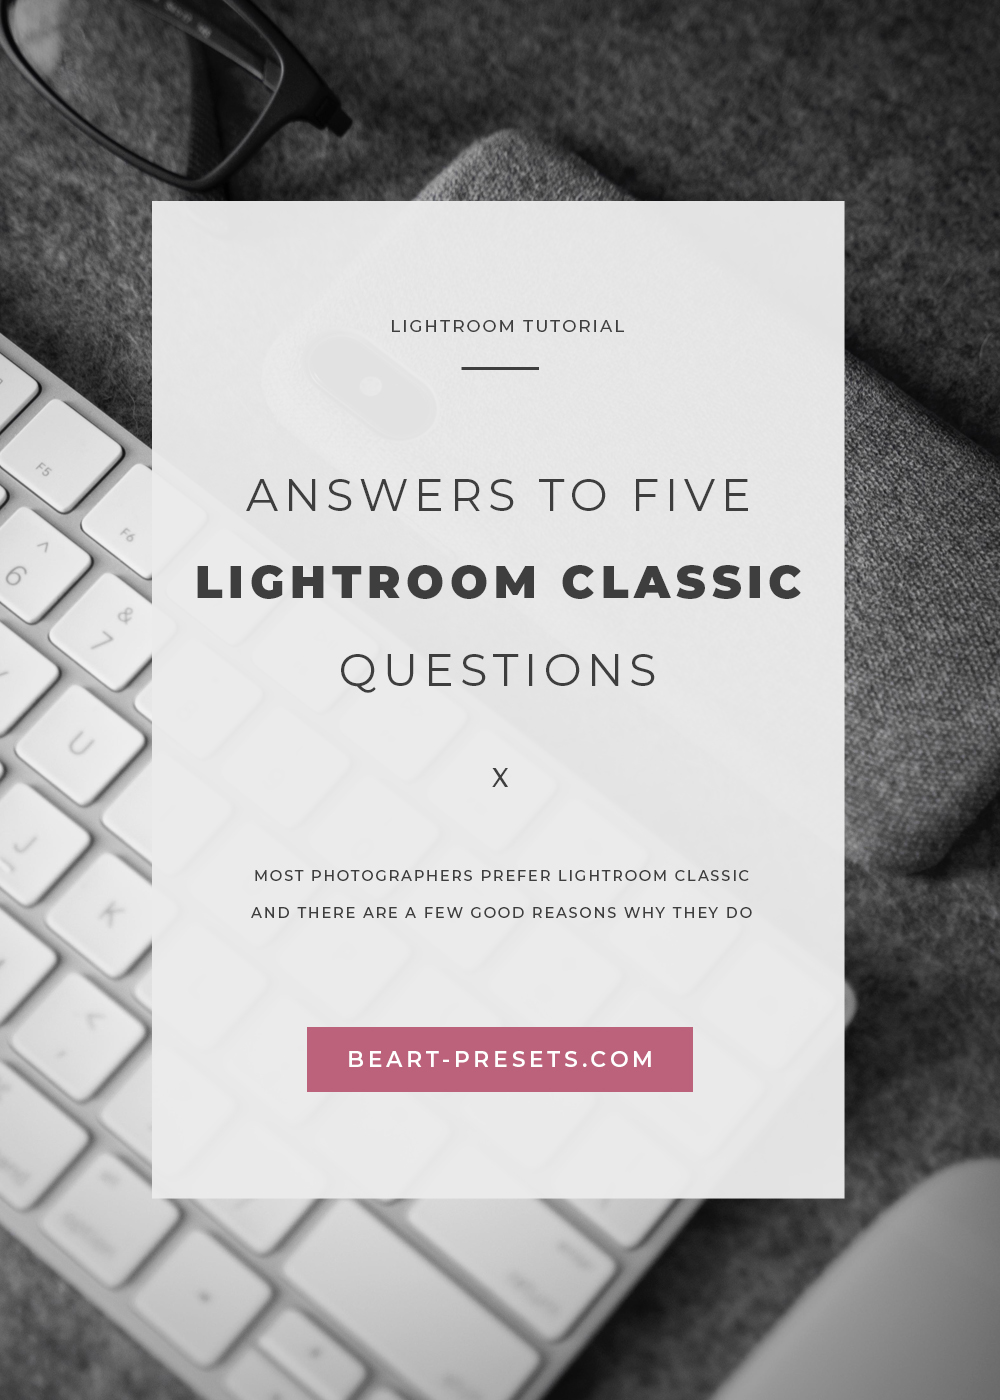 Answers to FIVE Lightroom Classic Questions